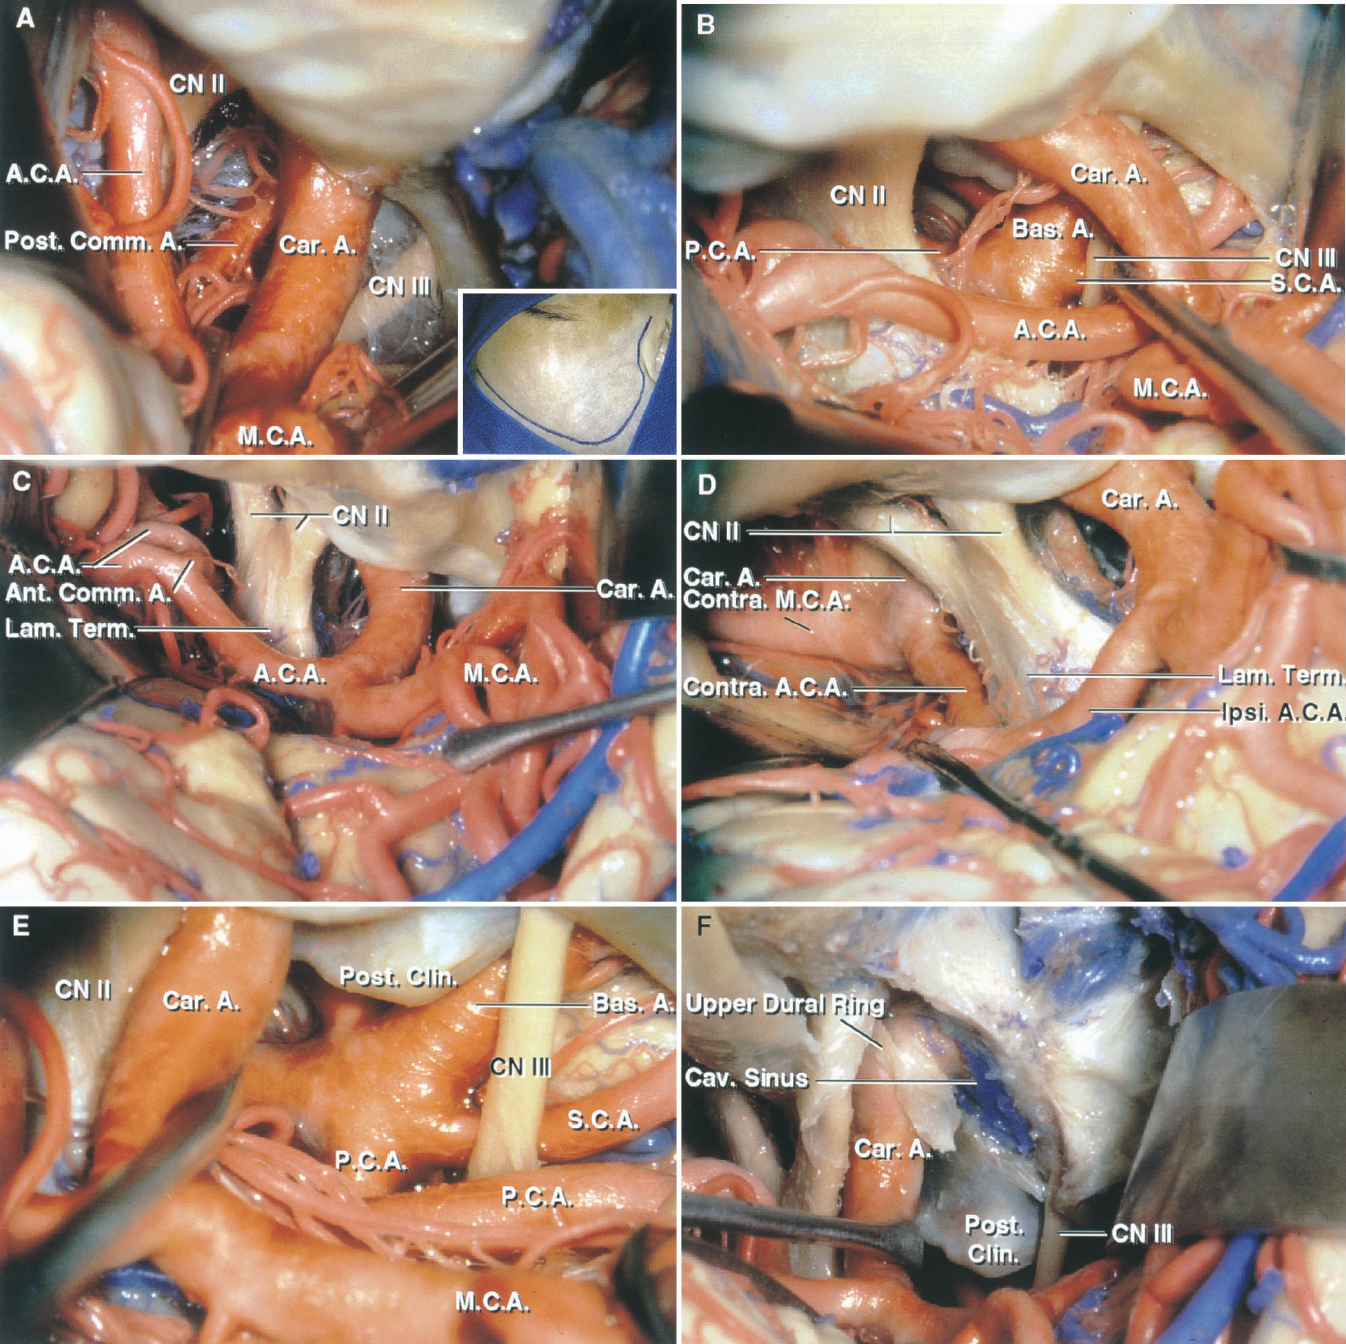 FIGURE 5.9. A–F. Exposure of the anterior incisural space through a frontotemporal craniotomy. A, the insert shows the site of the craniotomy. The frontal and temporal lobes have been retracted to expose the optic and oculomotor nerves and the anterior and middle cerebral and posterior communicating arteries. B, the opticocarotid triangle, located between the optic nerve and the carotid and anterior cerebral arteries, has been opened with gentle retraction to expose the basilar apex and the ipsilateral oculomotor nerve passing forward between the PCA and SCA. C, the exposure has been directed medially above the optic chiasm to expose the region of the anterior communicating artery. D, the frontal lobe has been elevated to expose the contralateral carotid and anterior and middle cerebral arteries. E, the carotid artery has been elevated to expose the basilar artery apex through the interval between the carotid artery and oculomotor nerve. The posterior clinoid process blocks access to the basilar artery. F, the anterior clinoid process and the roof of the cavernous sinus have been removed to provide access to the posterior clinoid process. The upper dural ring is located at the level of the upper margin of the anterior clinoid process. A., artery; A.C.A., anterior cerebral artery; Ant., anterior; Bas., basilar; Car., carotid; Cav., cavernous; Clin., clinoid; CN, cranial nerve; Comm., communicating; Contra., contralateral; Ipsi., ipsilateral; Lam., lamina; M.C.A., middle cerebral artery; P.C.A., posterior cerebral artery; Post., posterior; S.C.A., superior cerebellar artery; Term., terminalis; V1., first ophthalmic branch, trigeminal nerve.